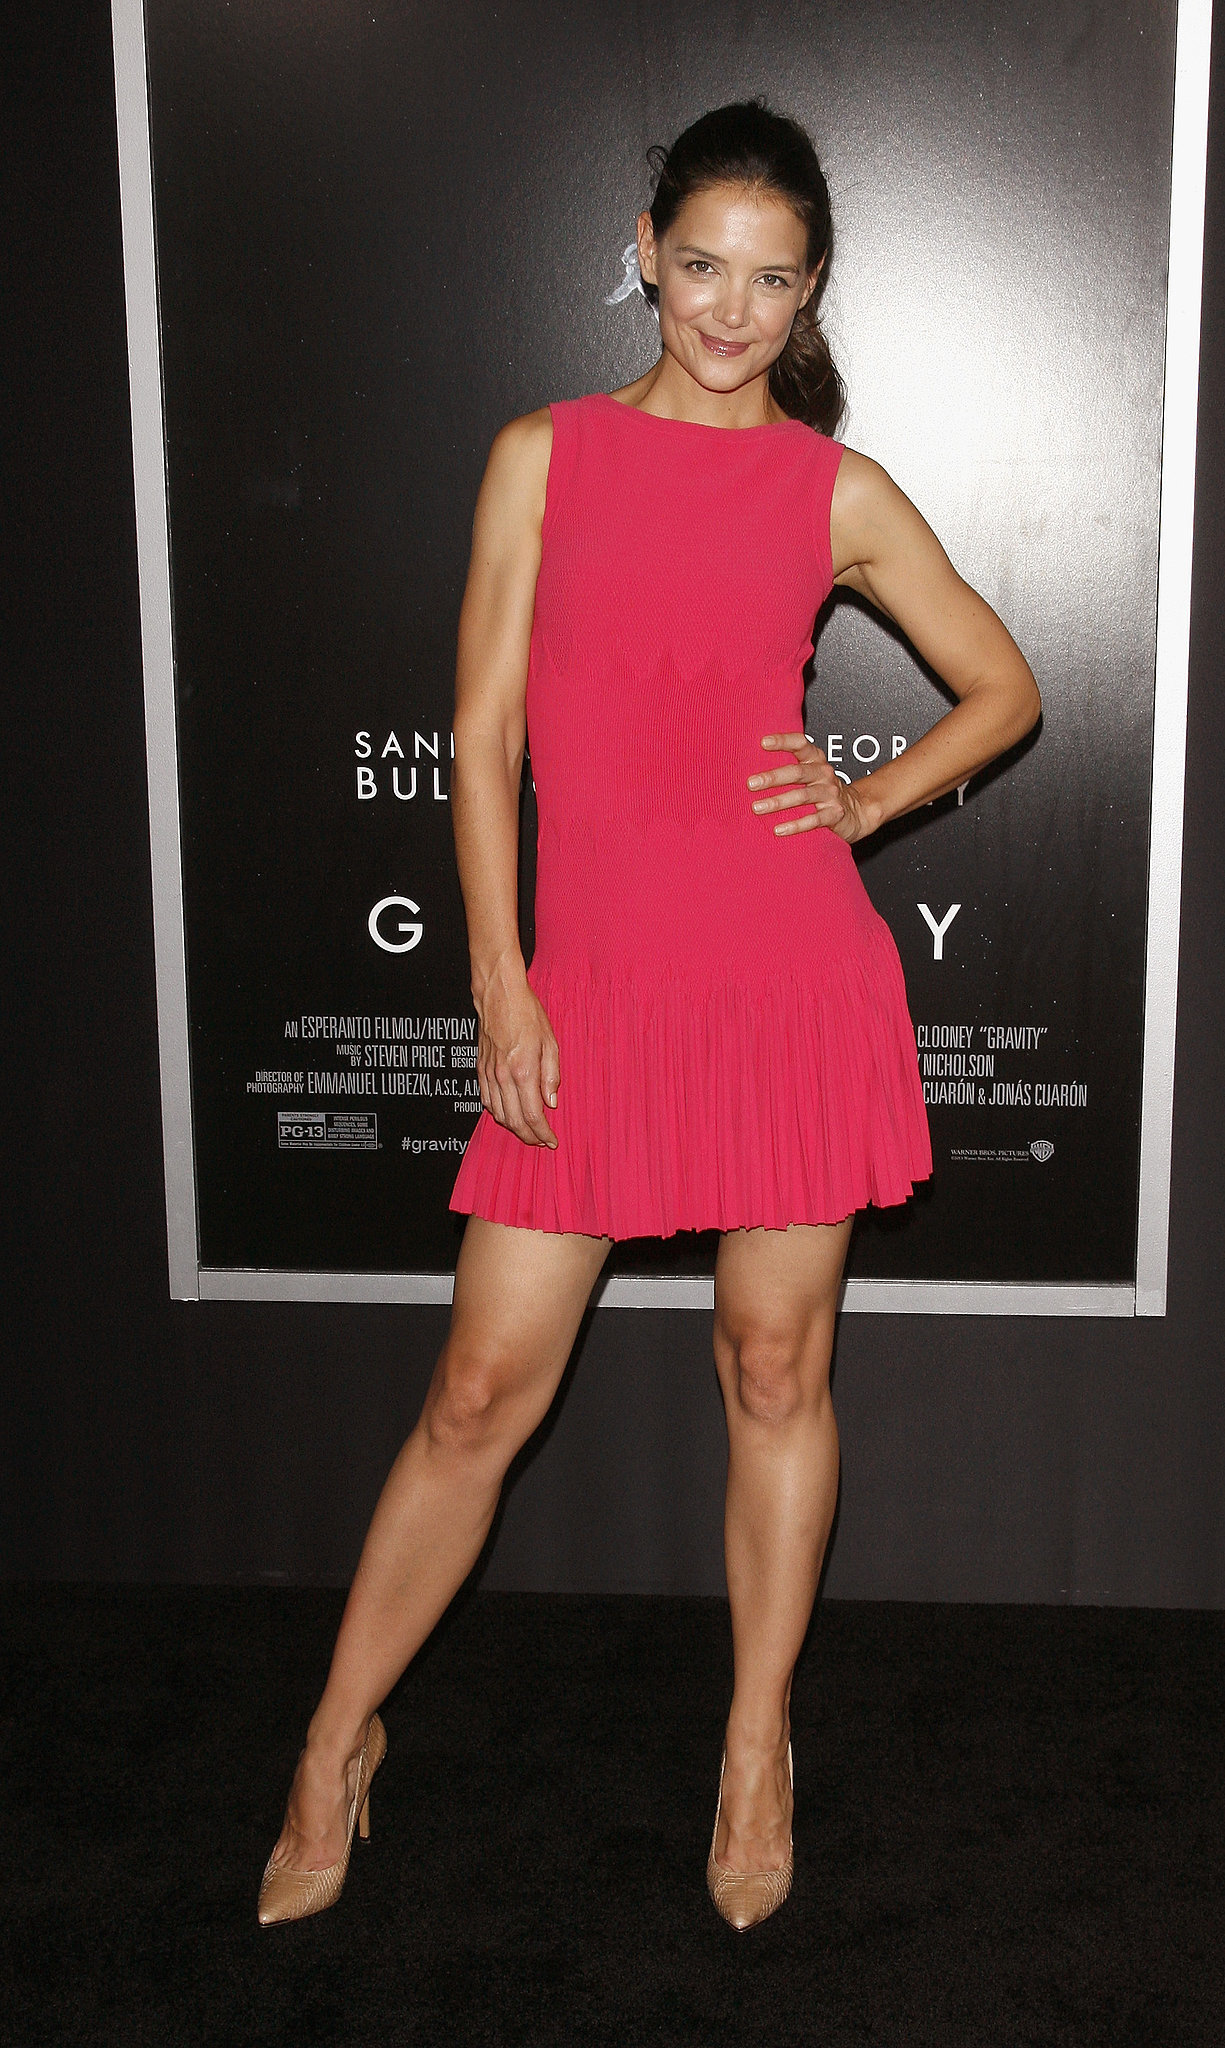 For the NYC premiere of Gravity, Katie Holmes popped in a bright pink pleated minidress by Azzedine Alaïa. Where to Wear: Sunset ice skating. Don't forget a pair of thick tights.